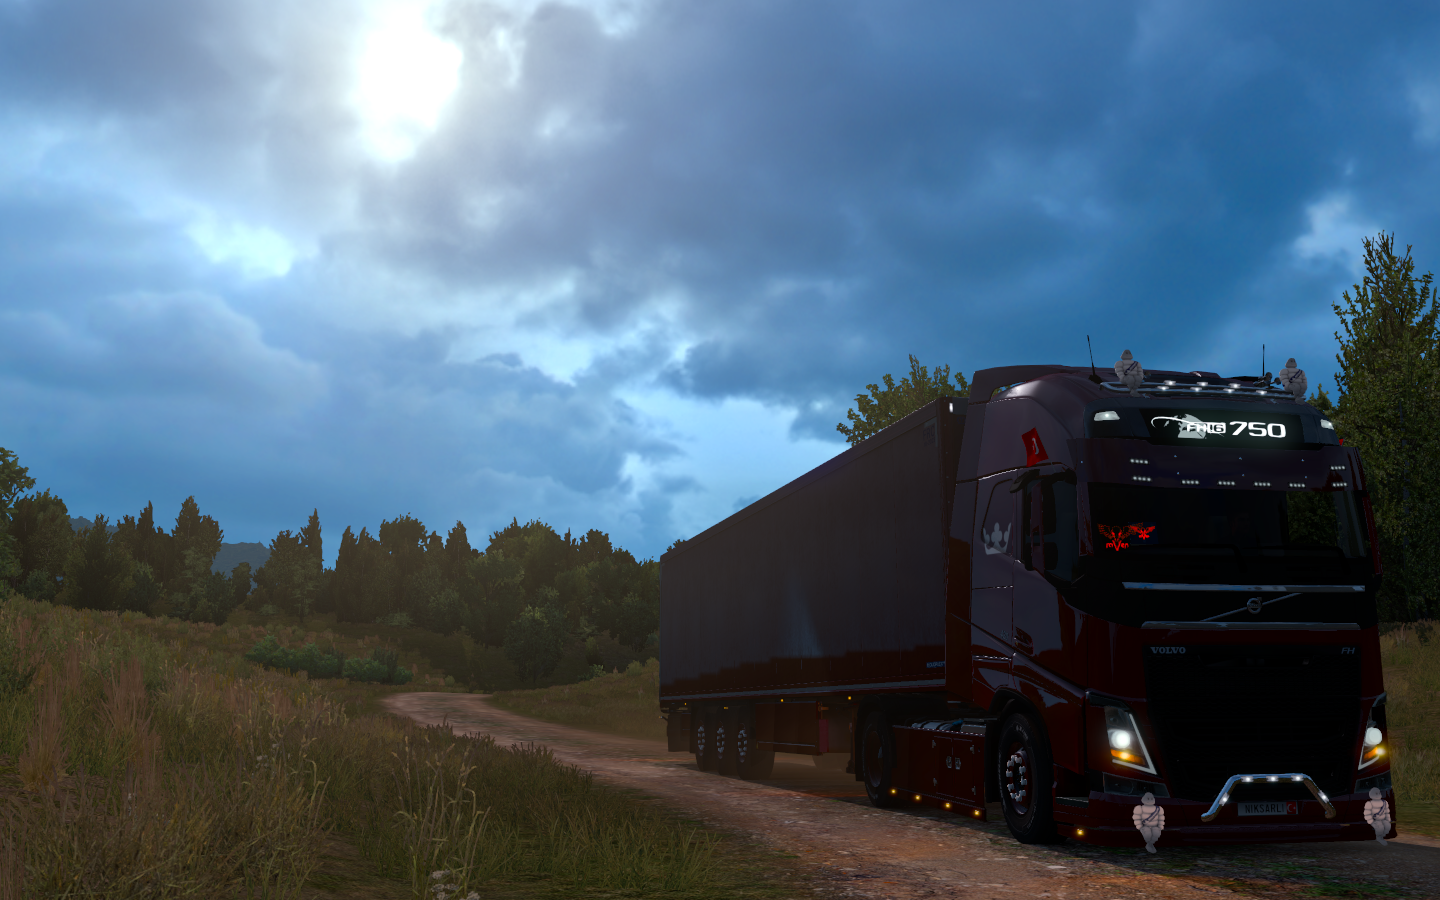 ets2_20190520_005554_00.png